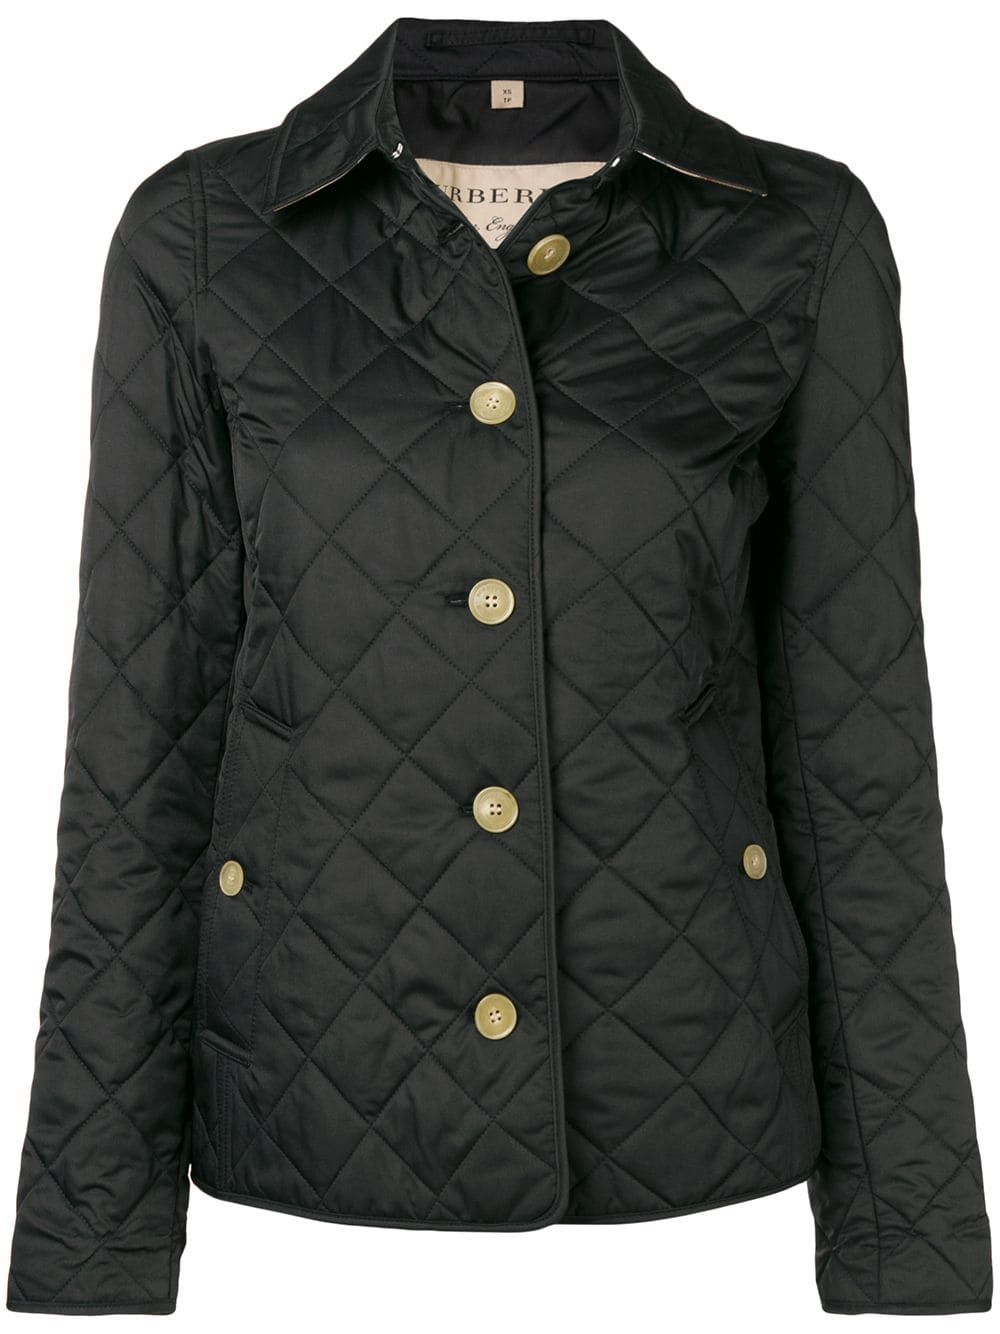 Burberry Check Print Quilted Jacket Black Quilted Jacket Jackets Burberry Print